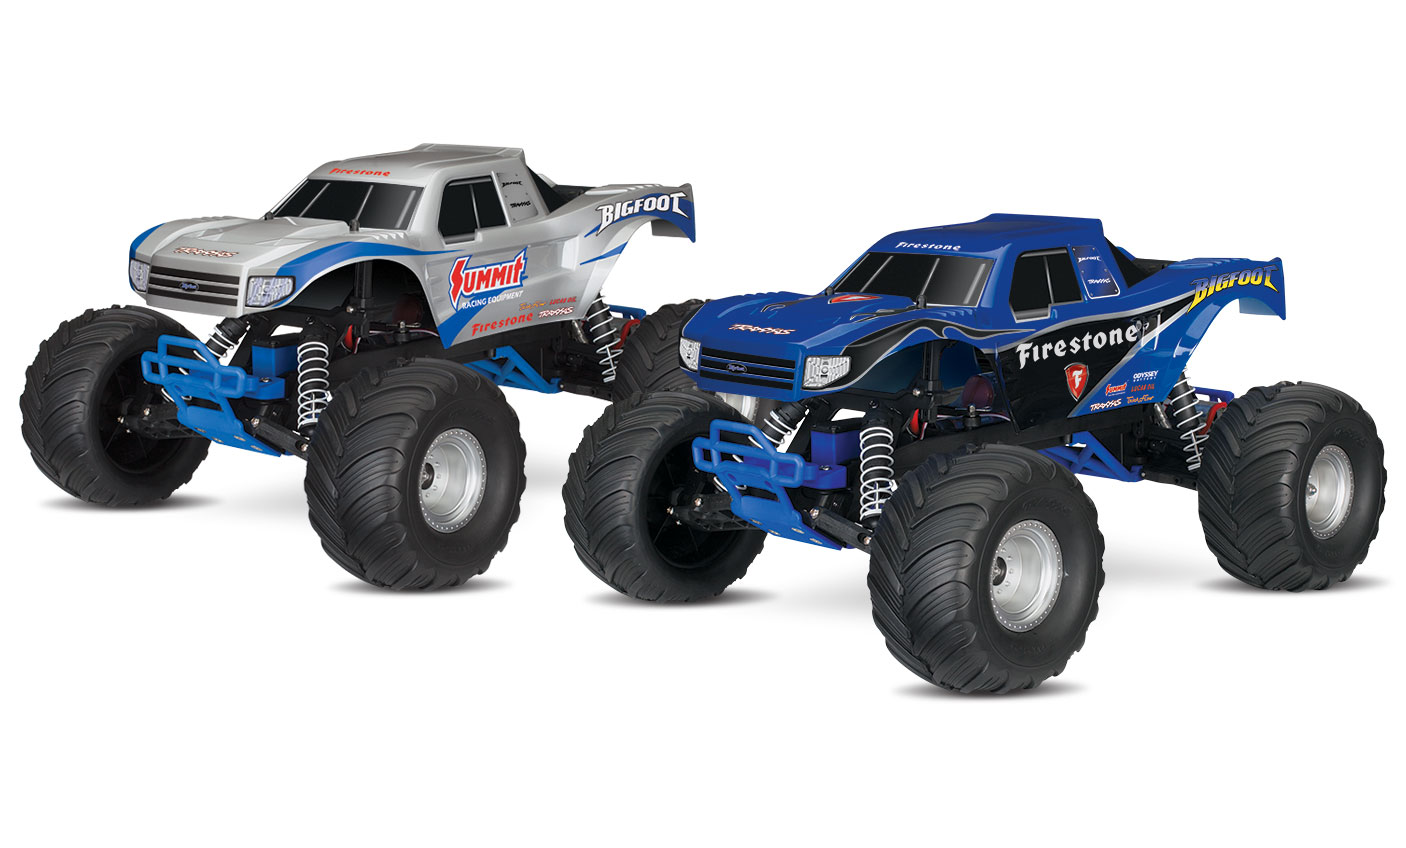 traxxas-bigfoot-36084-1-sum-5.jpg